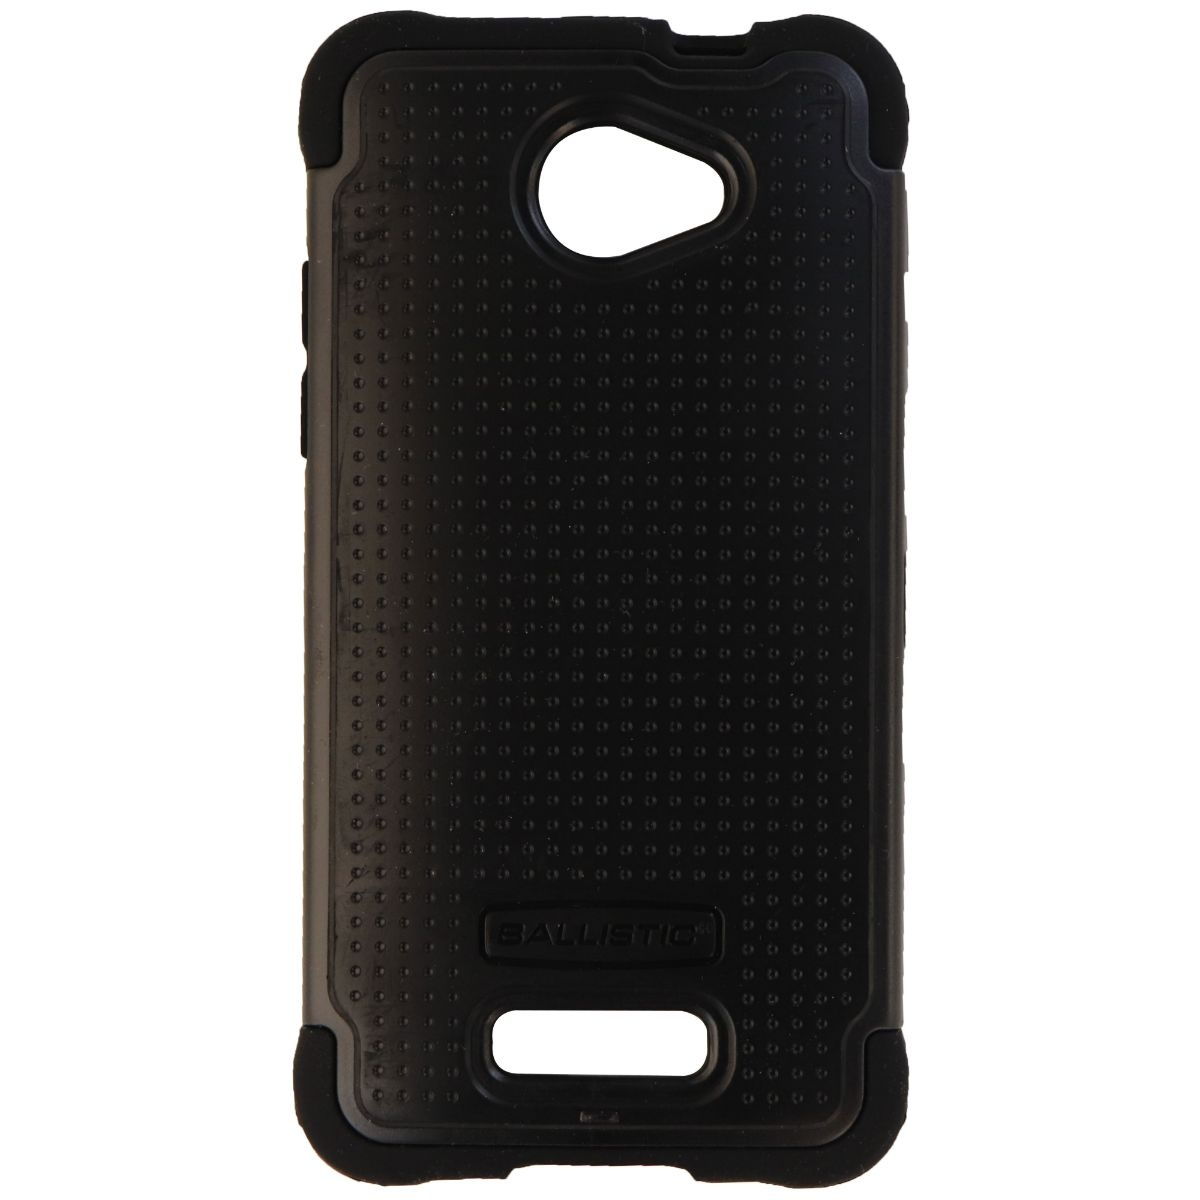 Ballistic Shell Gel Series Dual Layer Case for HTC Droid DNA - Black